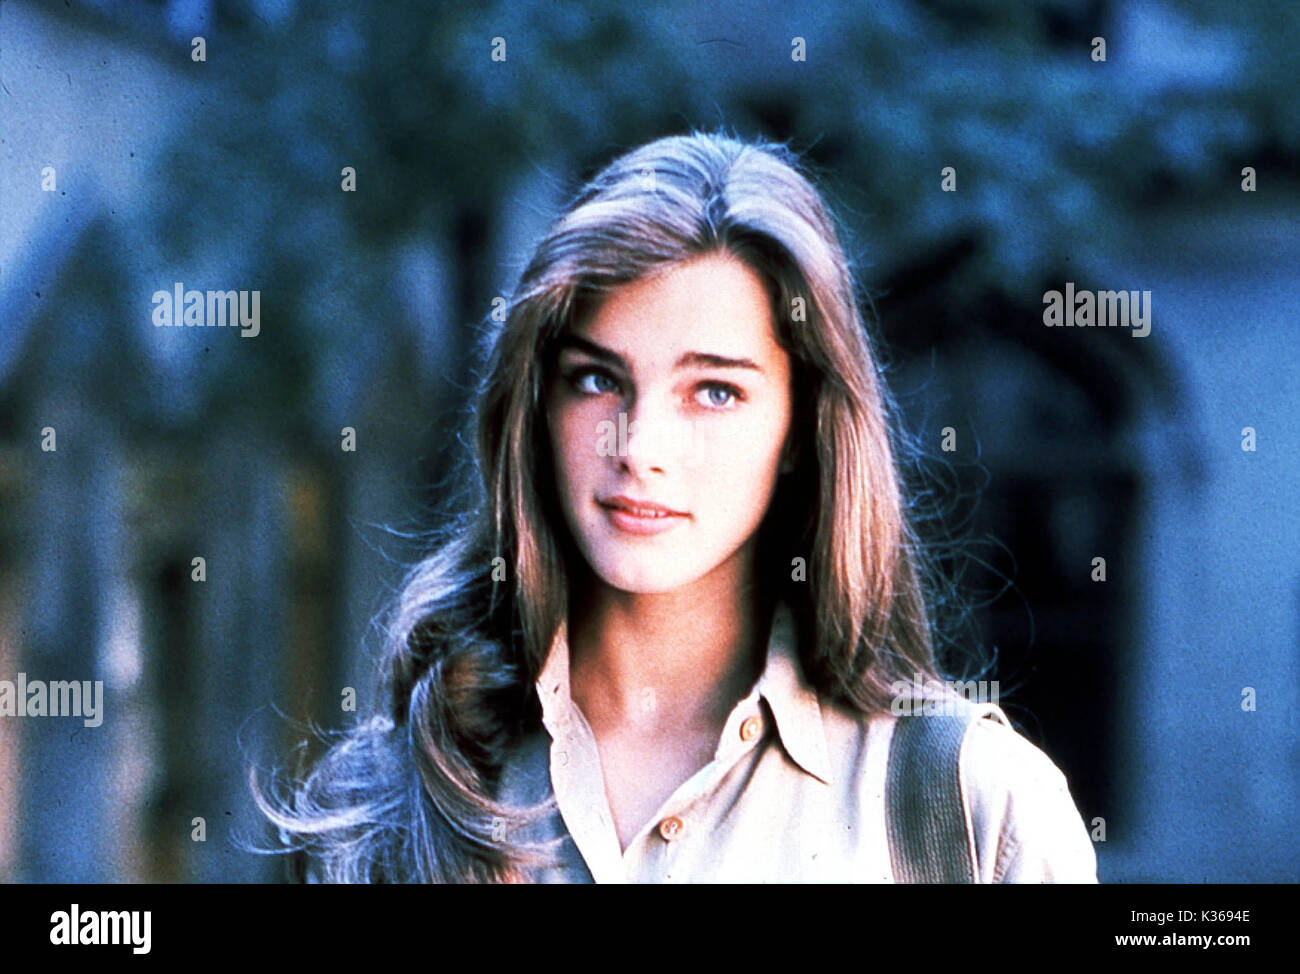 Brooke Shields Stock Photos & Brooke Shields Stock Images ...